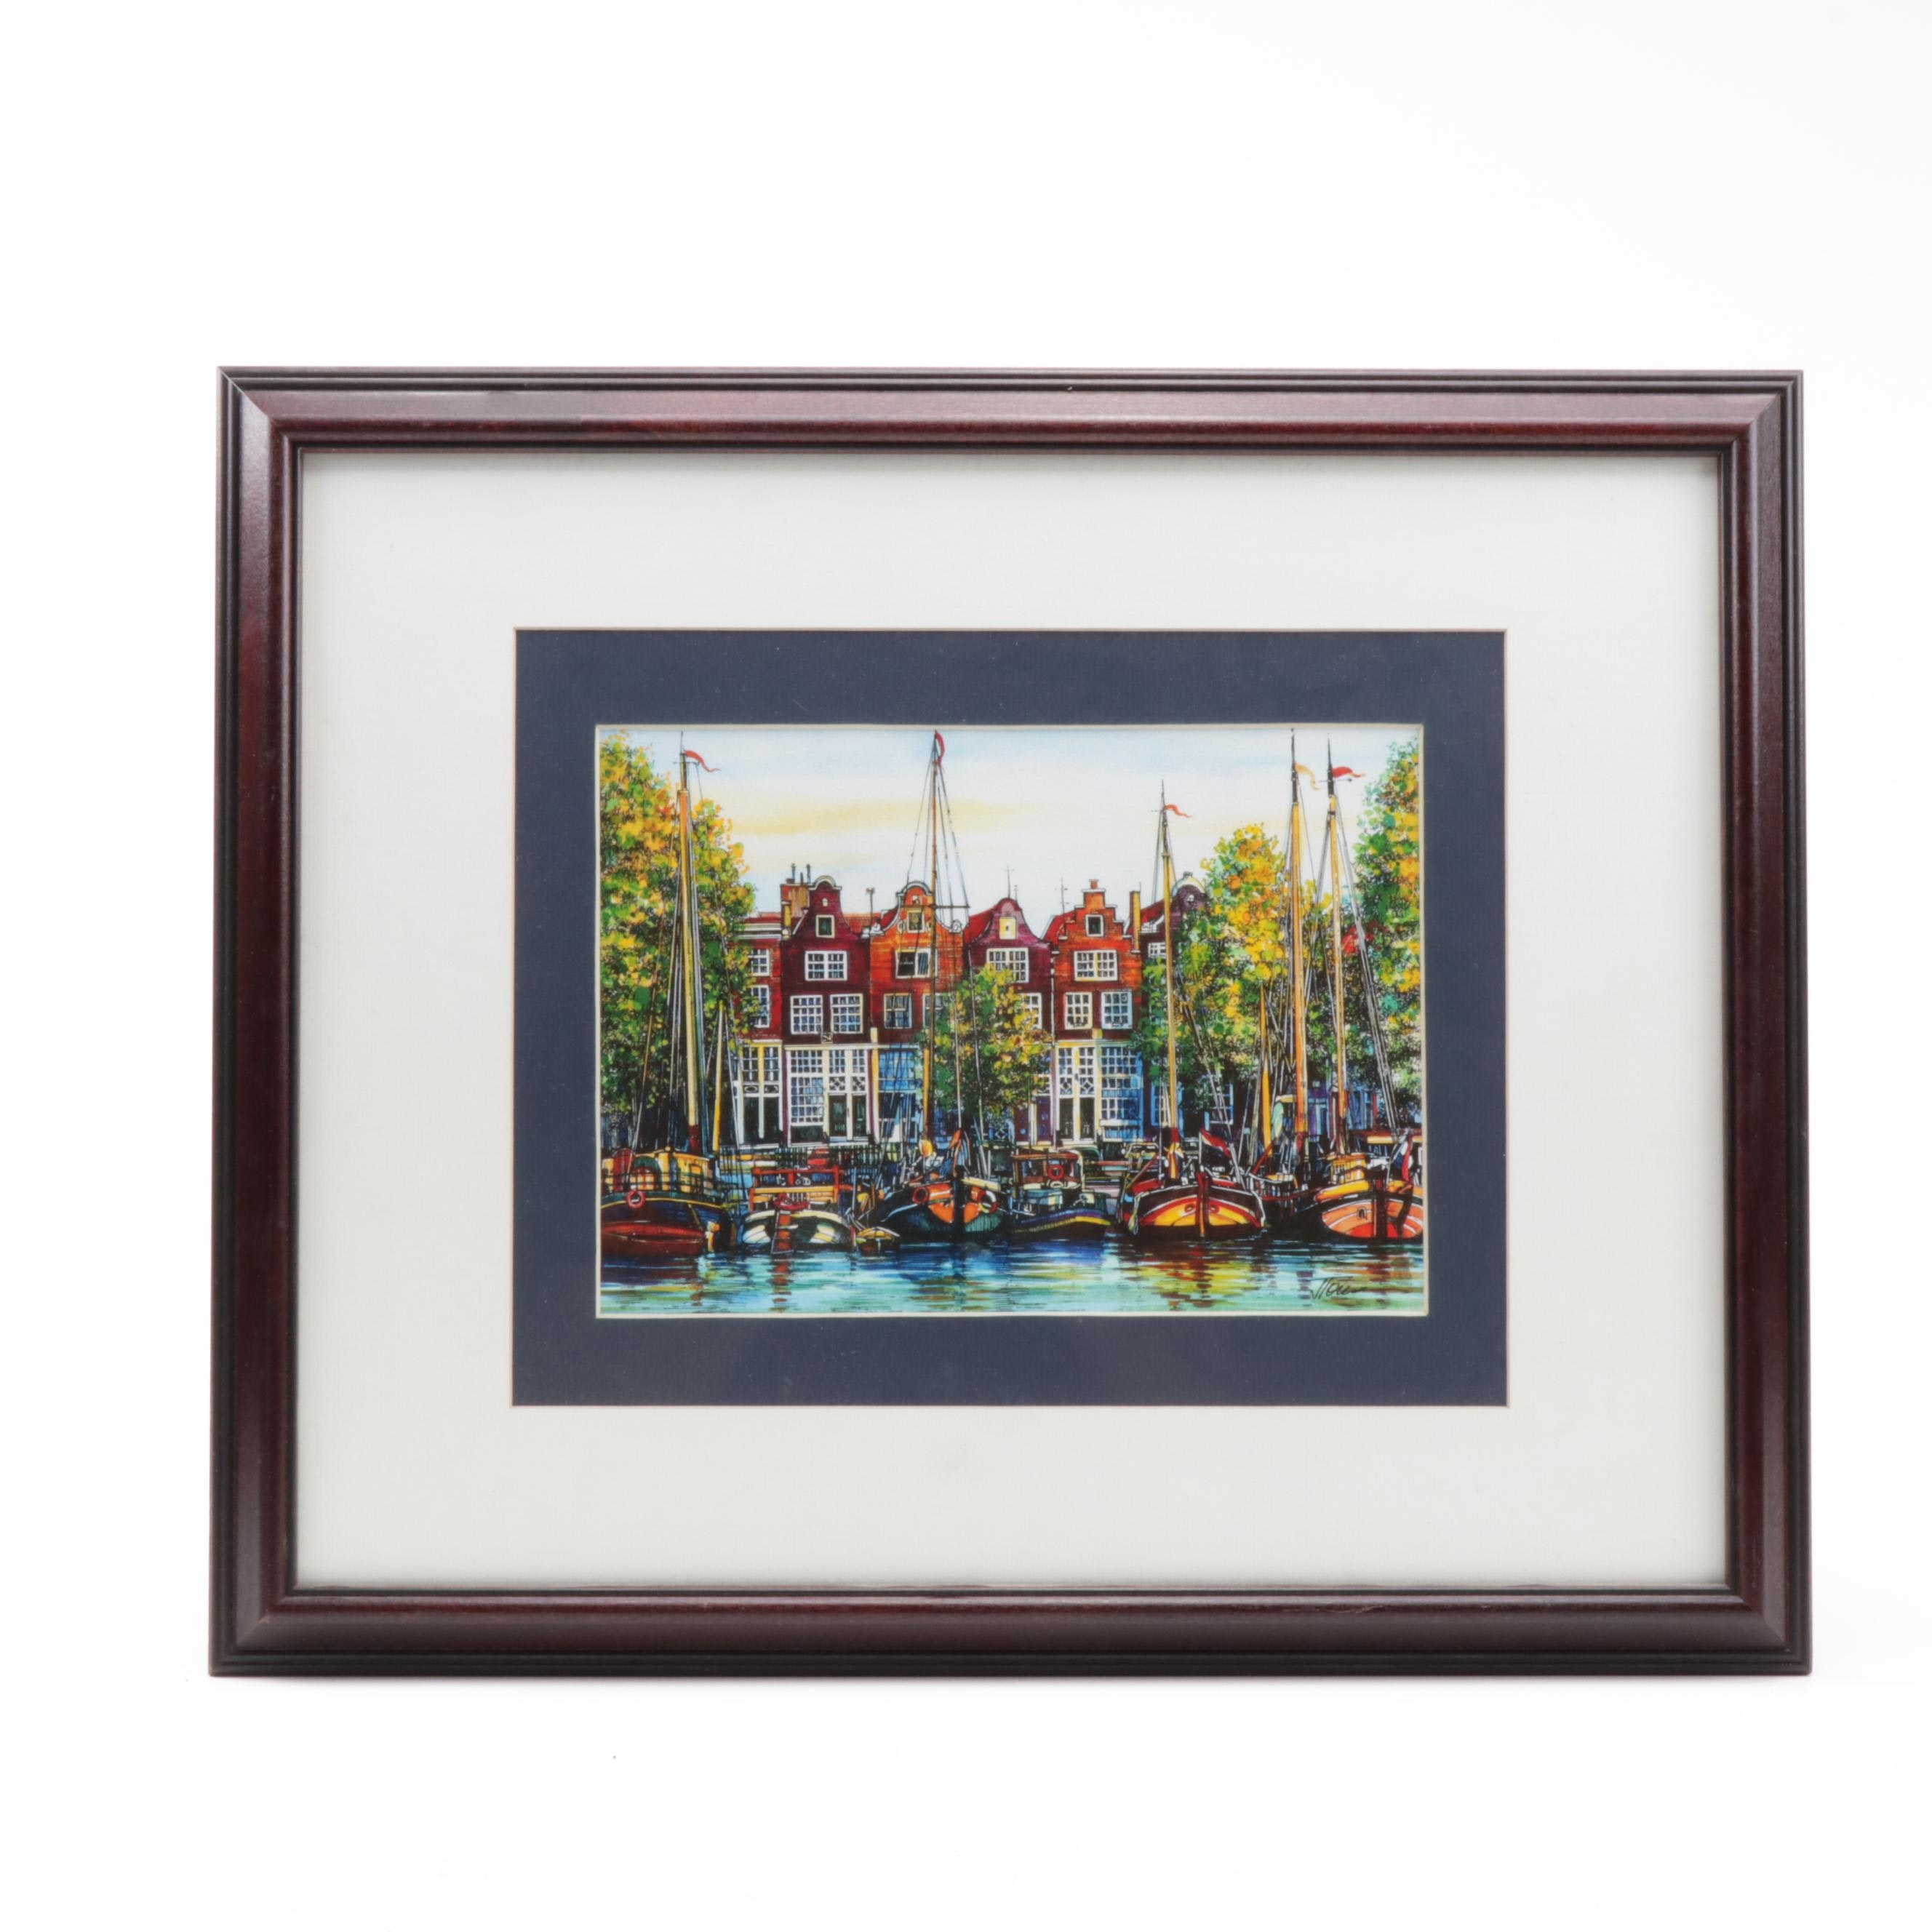 Ink and Watercolor Painting of Amsterdam